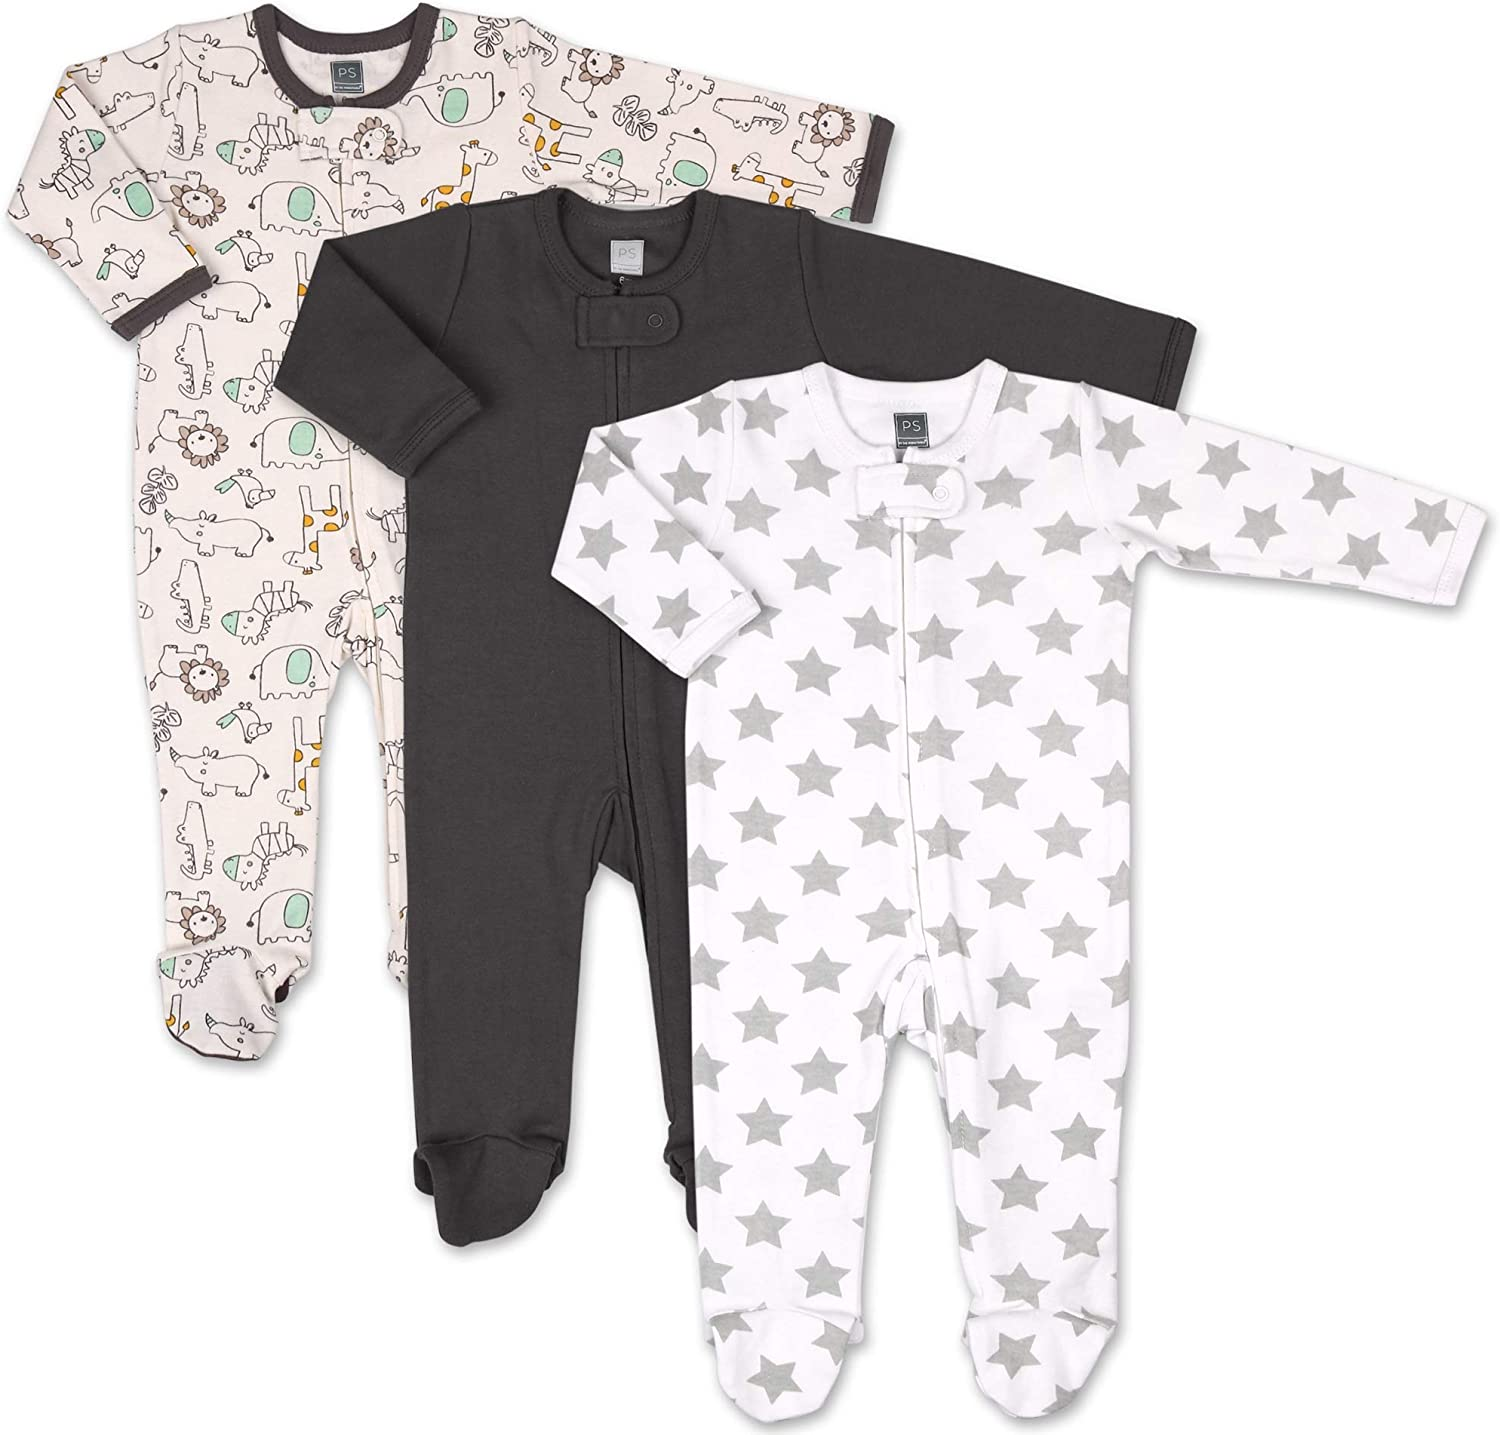 The Peanutshell Baby Sleeper Set for Baby Boys or Girls | 3 Pack in Safari, Stars & Black | Newborn to 9M Footed Pajamas